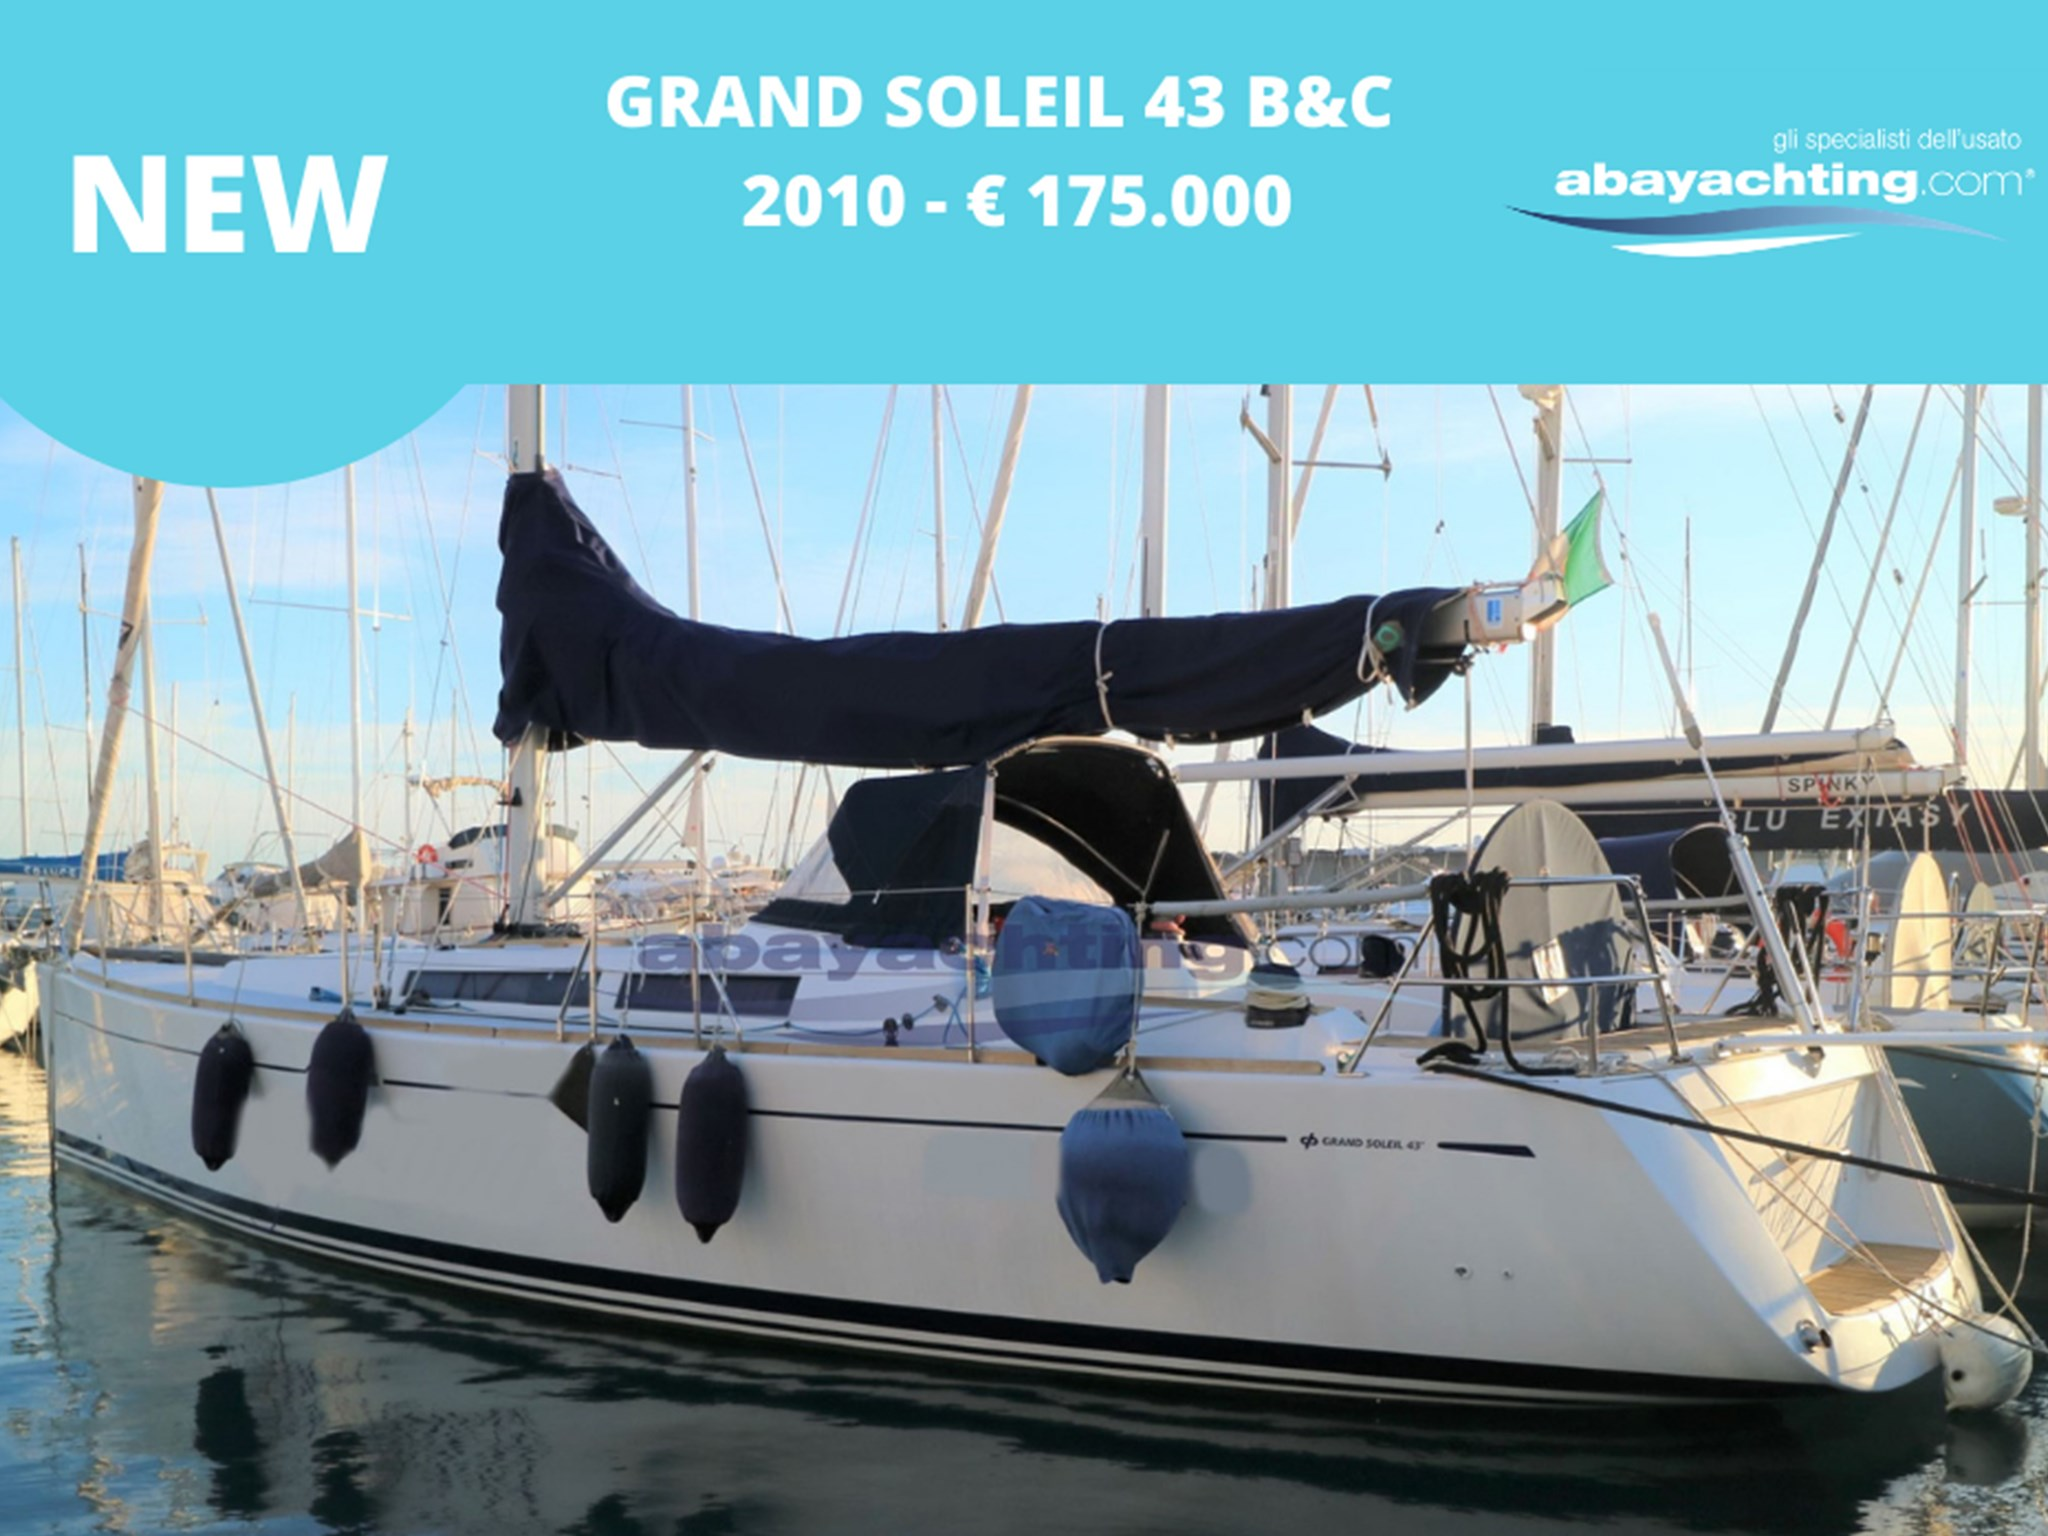 New arrival Grand Soleil 43 B&C